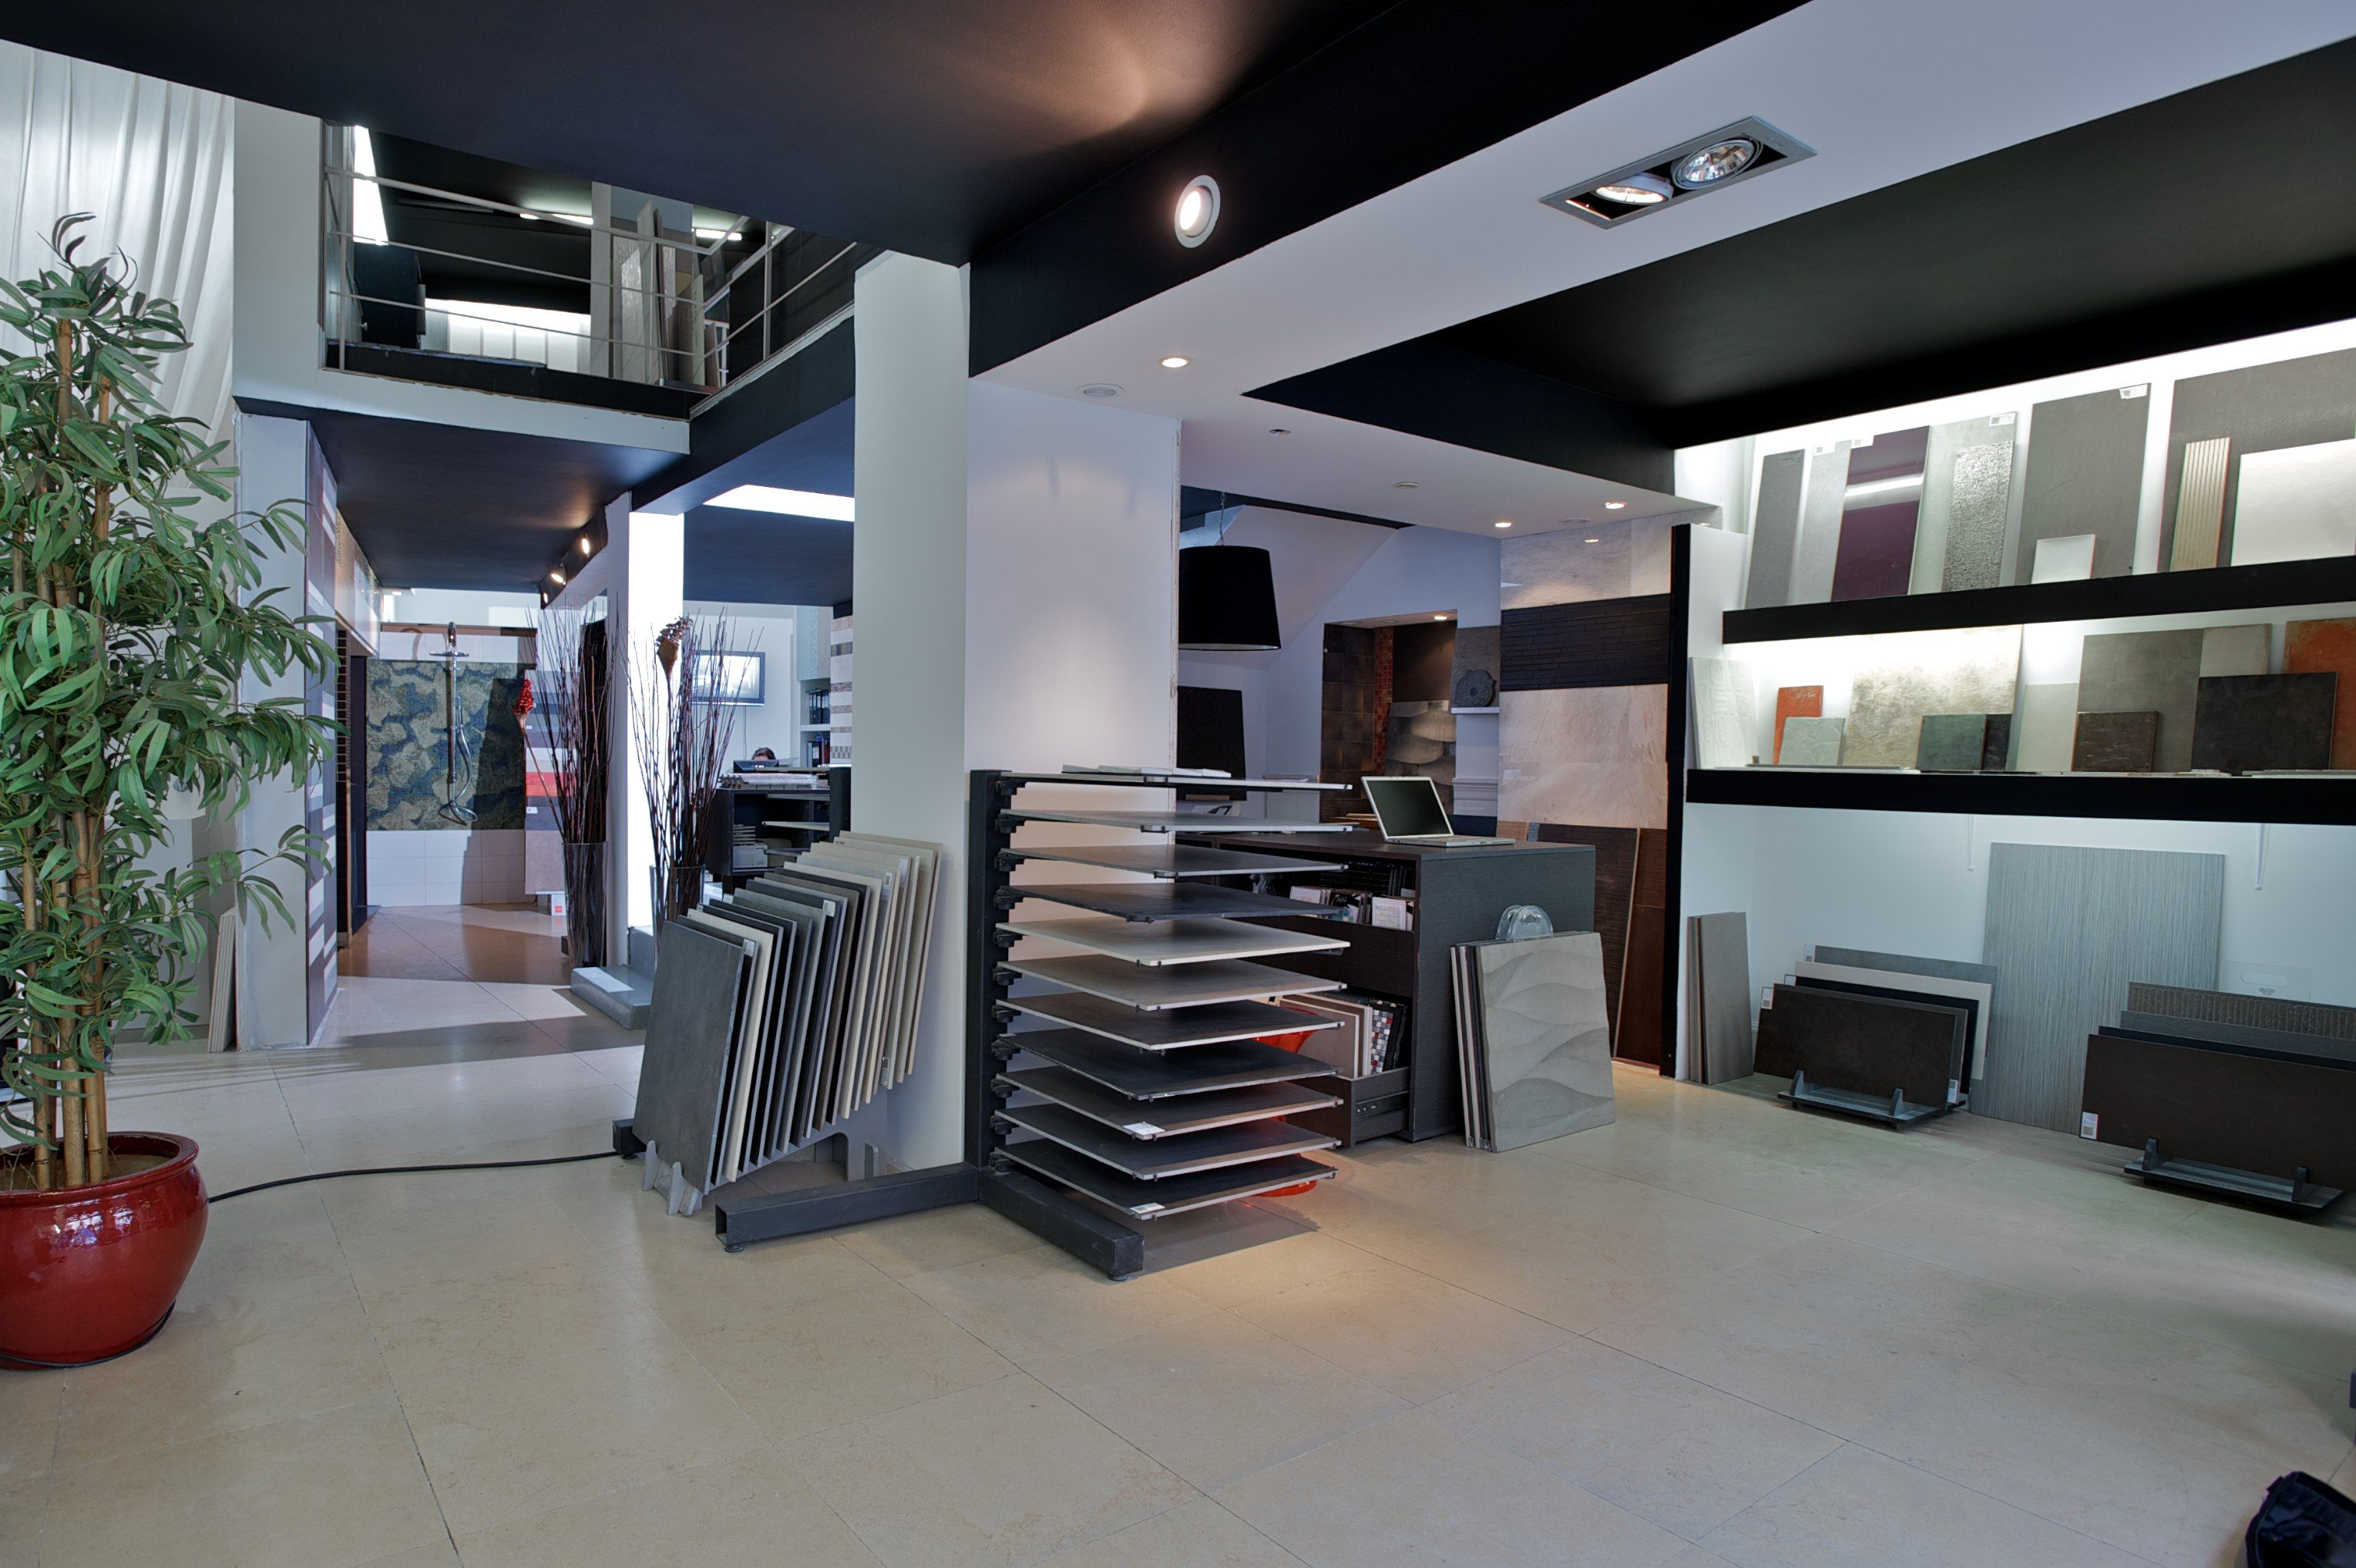 Casabagno showroom bastille casabagno showroom bastille - Showroom salle de bain paris ...